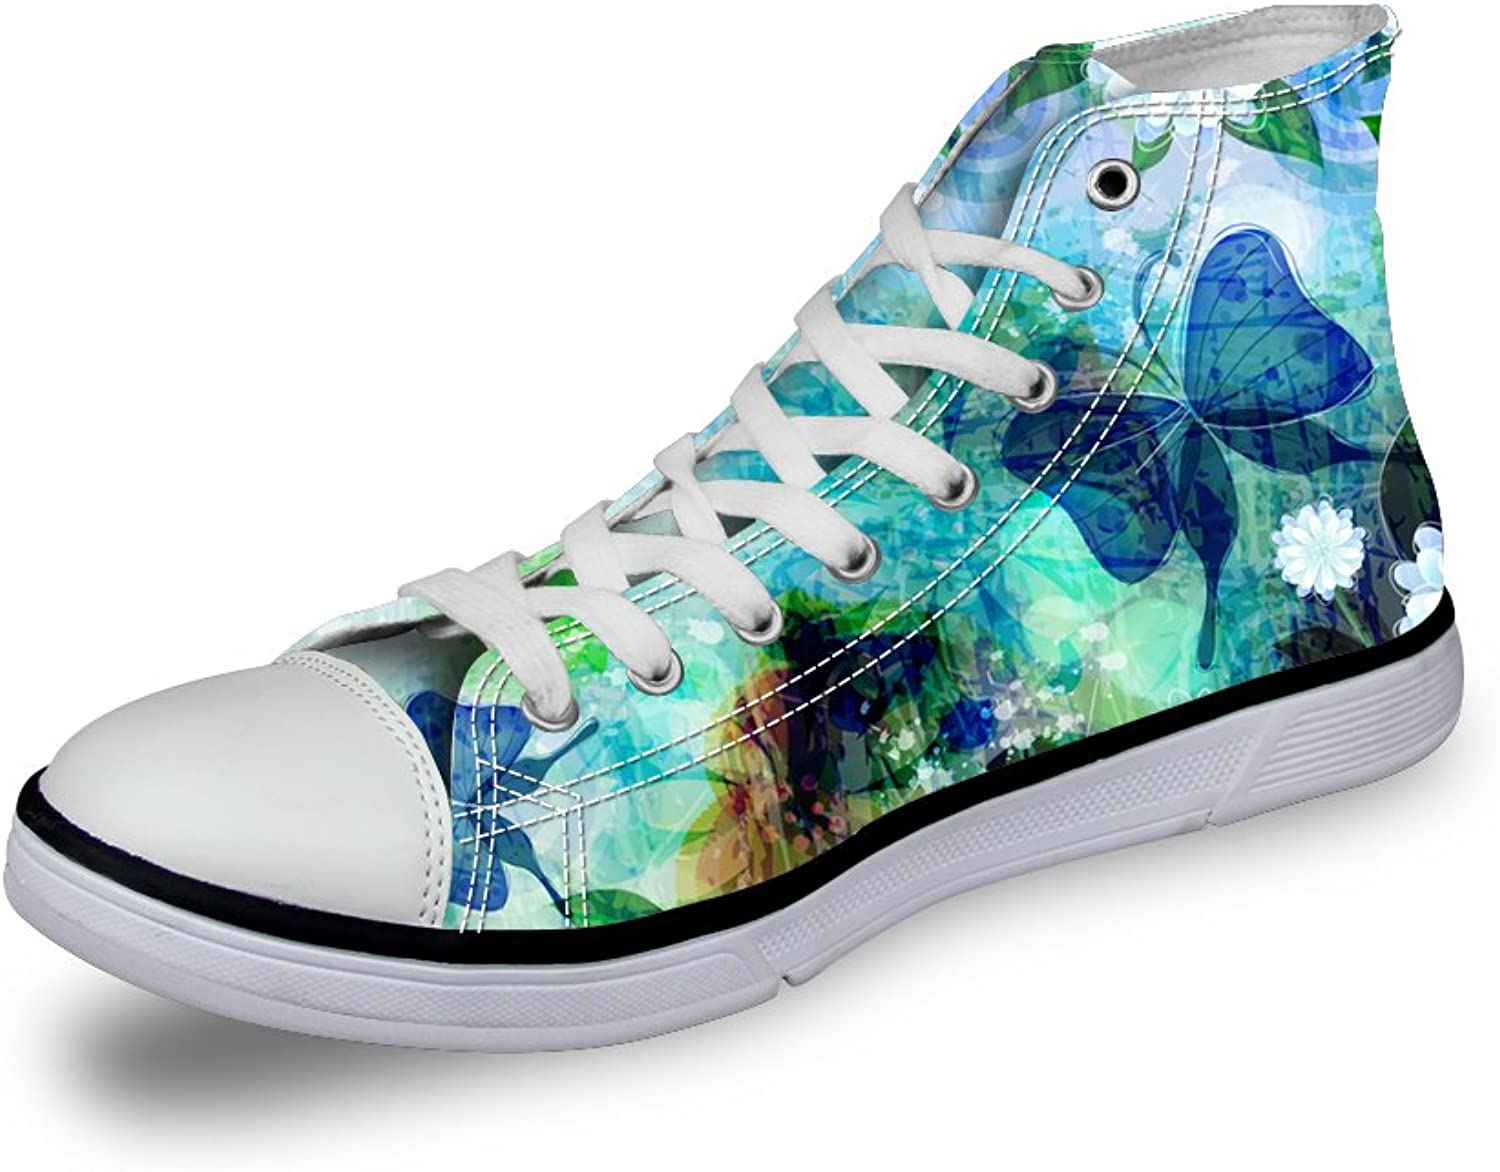 Frestree Fashion shoes for Girls Basketball shoes